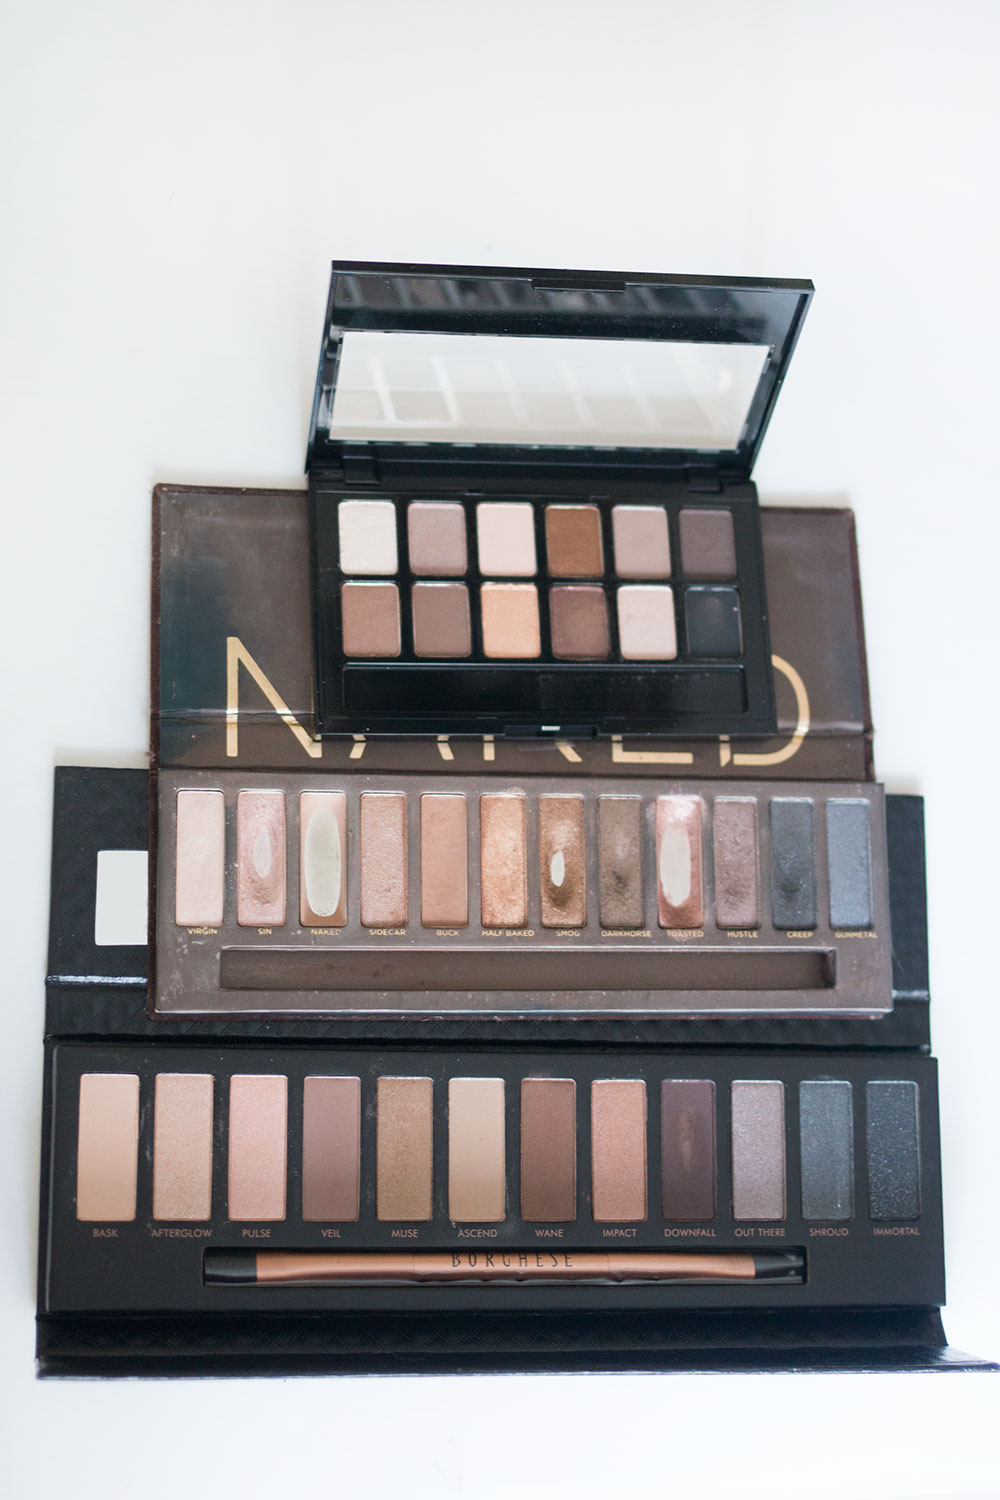 Urban Decay Naked Palette vs. Borghese Eclissare Collection vs. Maybelline The Nudes // Best & Worst of Beauty Dupes/Duds // Hello Rigby Seattle Beauty & Style Blog